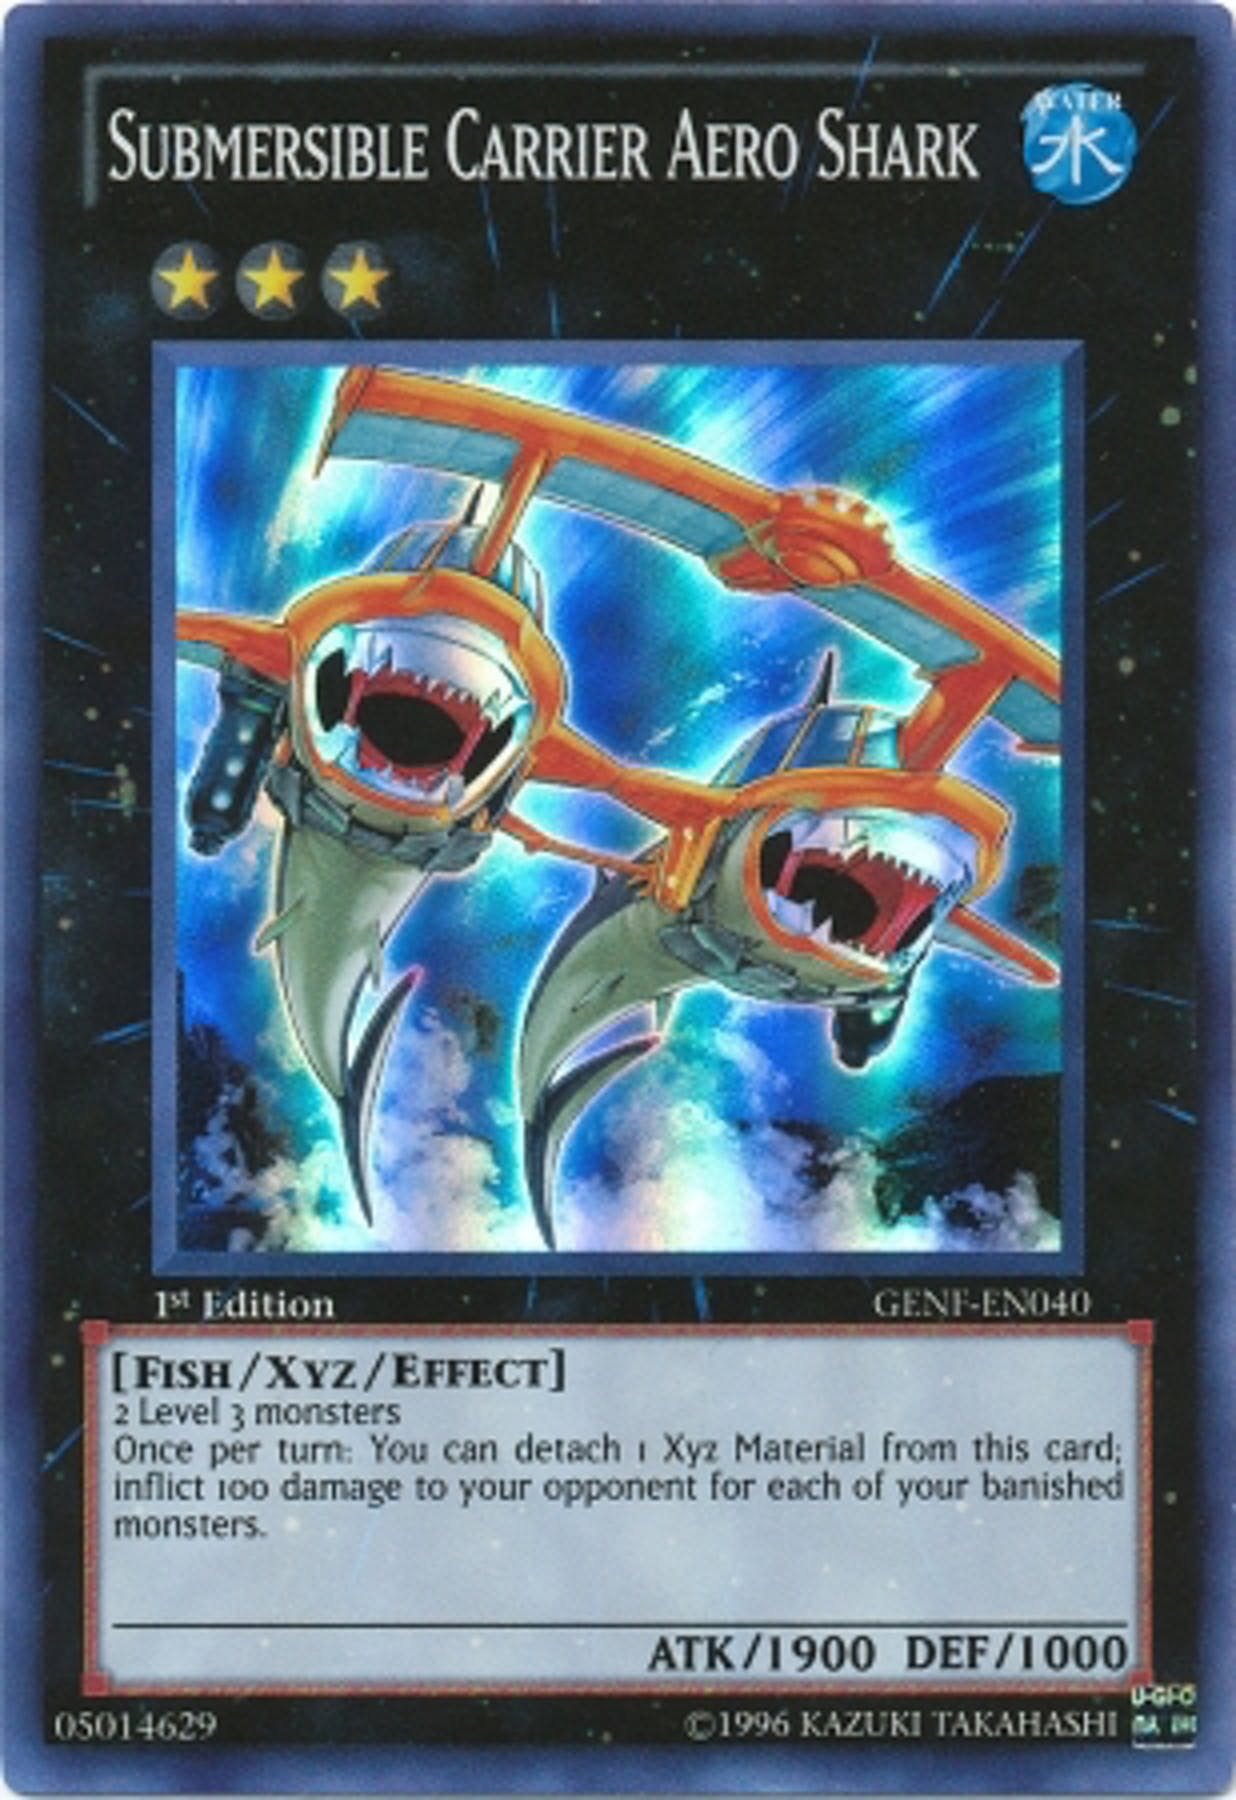 Yu Gi Oh Generation Force Single Submersible Carrier Aero